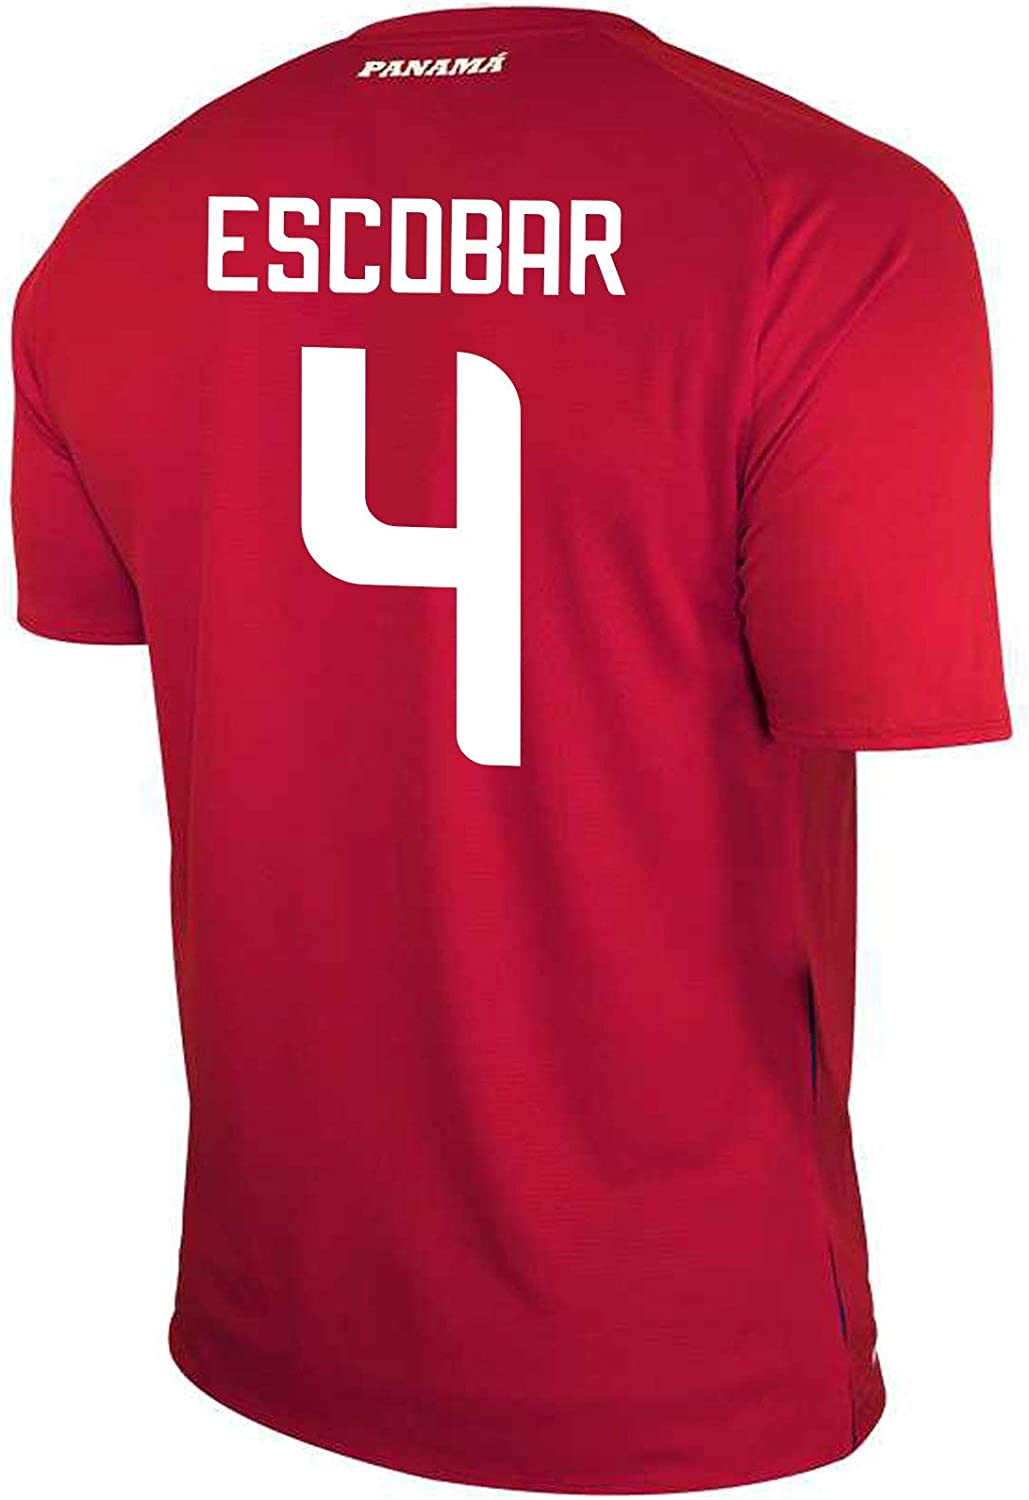 New Balance Escobar #4 Panama Home Soccer Men's Jersey FIFA World Cup Russia 2018